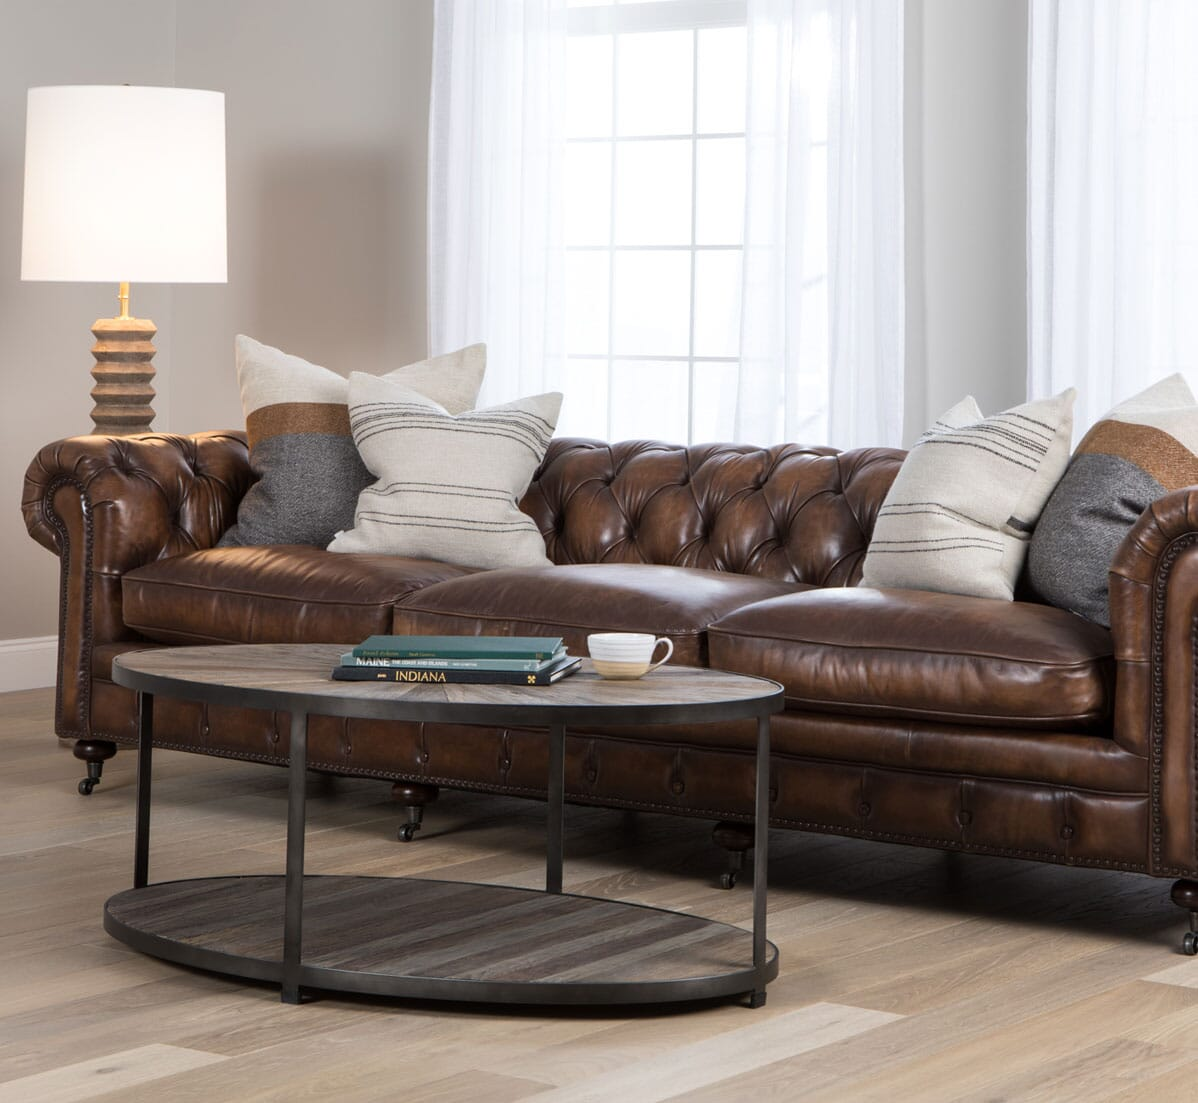 Home Decor Furnishing Services: Quality Home Furnishings Wisconsin